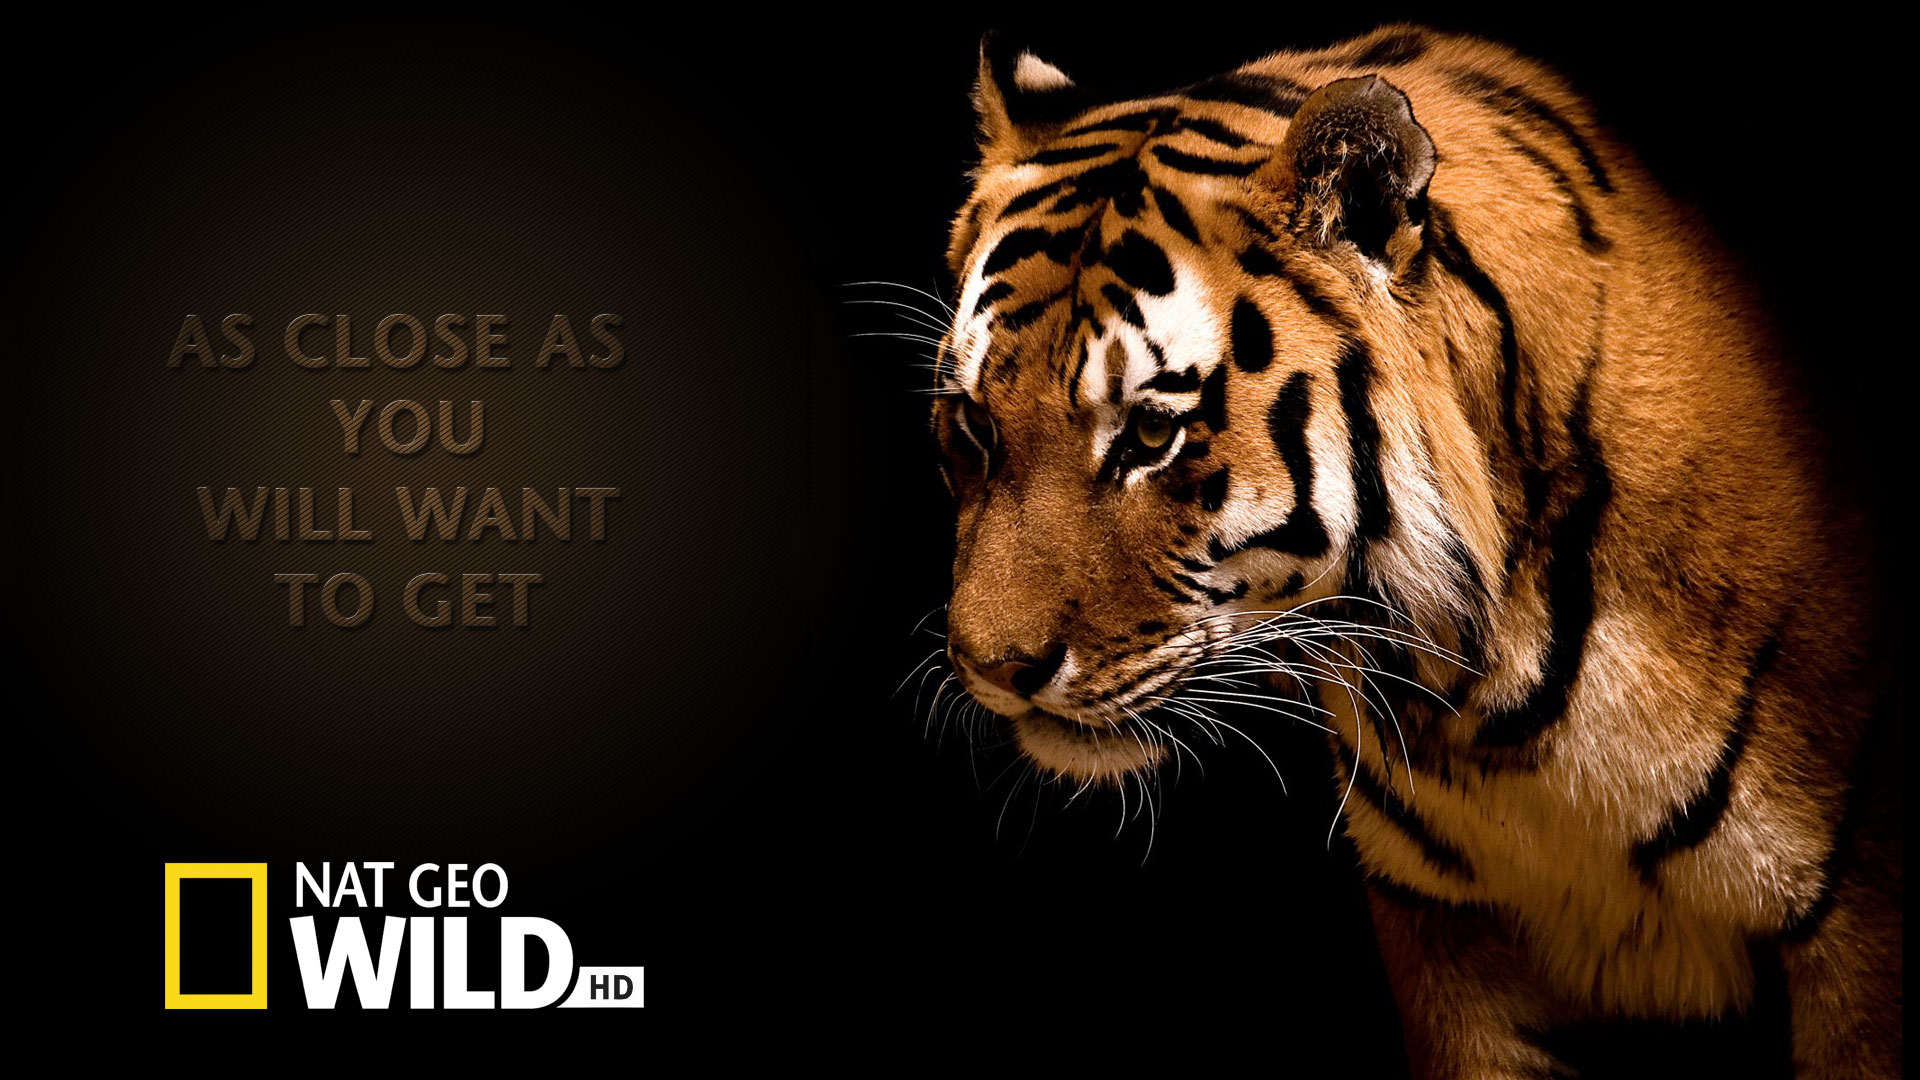 Nat Geo Ad Tiger